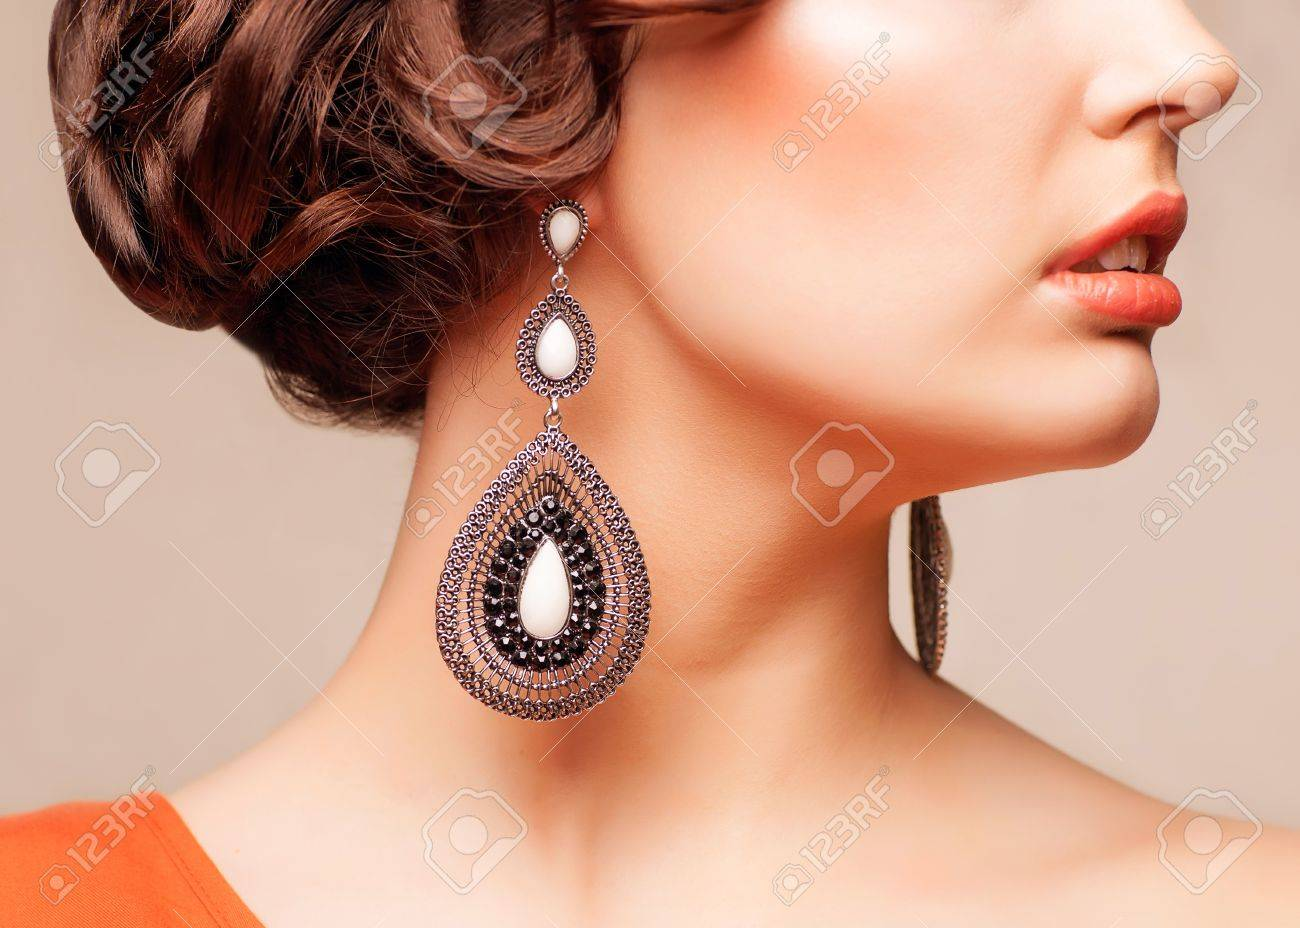 closeup body part portrait of young beautiful woman in jewellery Stock Photo - 18577563